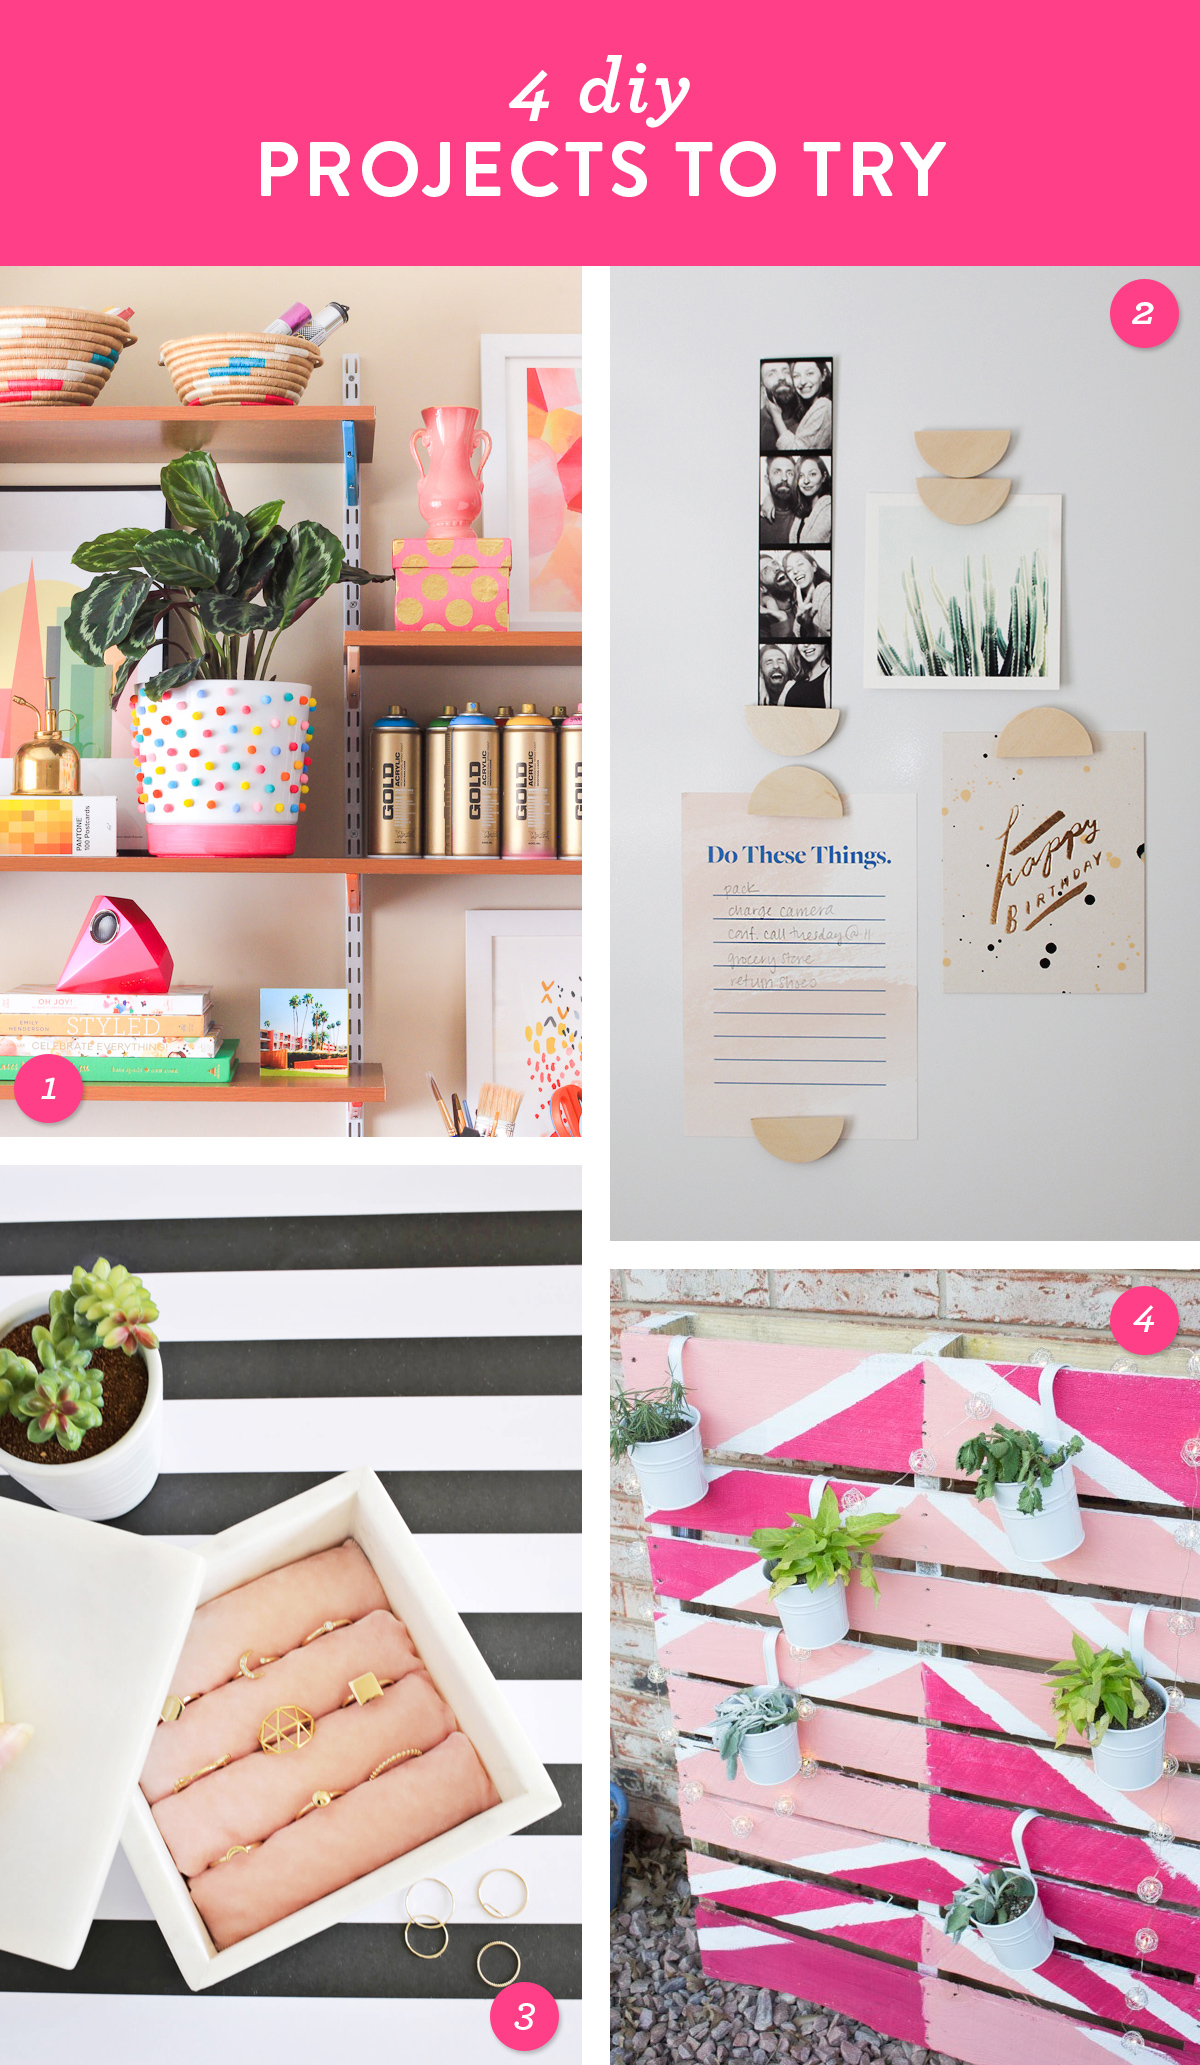 Add color and style to your home and try one of these easy DIY projects this weekend.